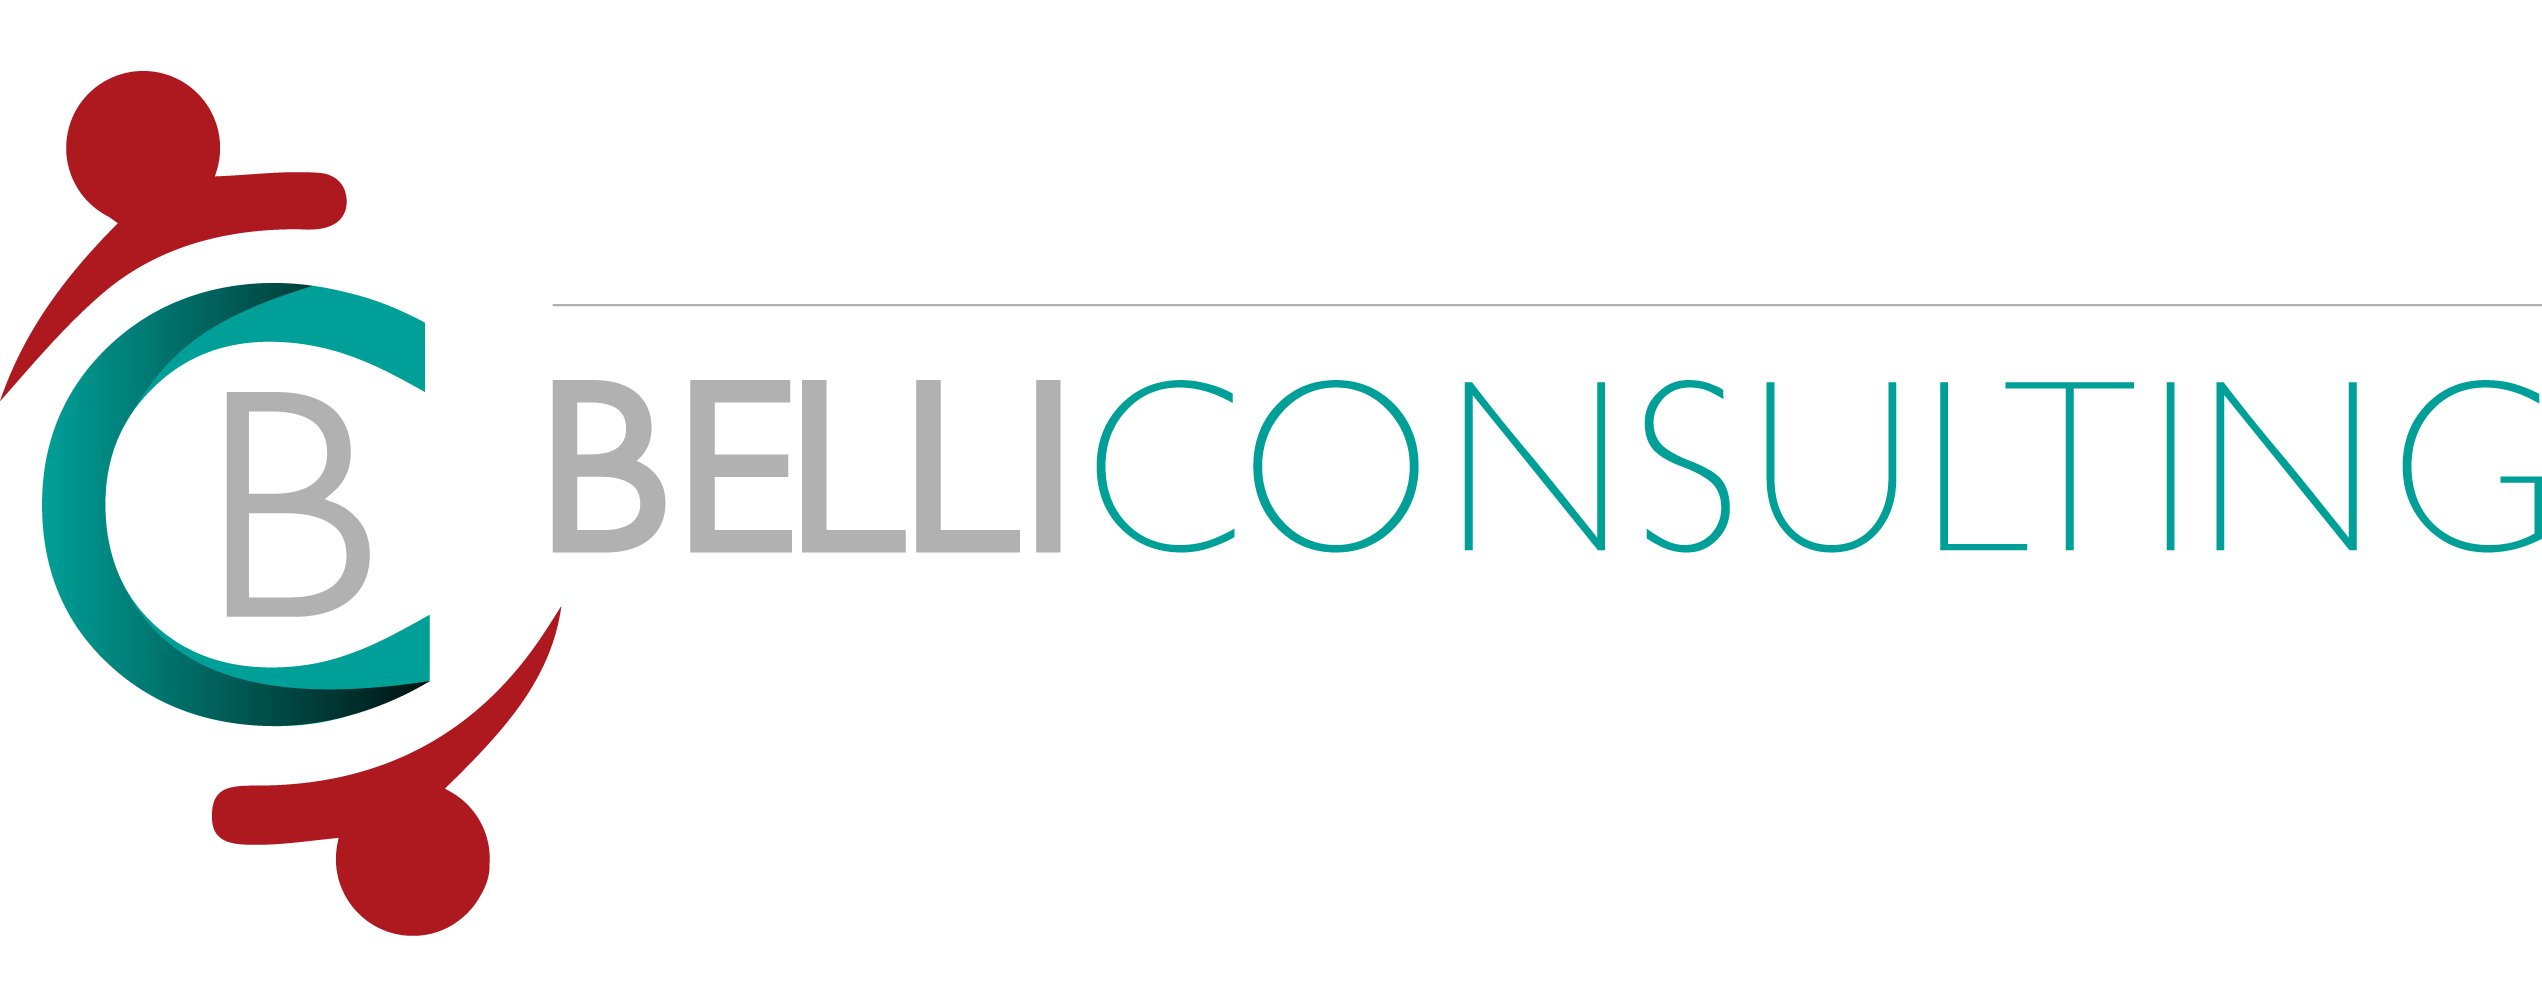 BelliConsulting